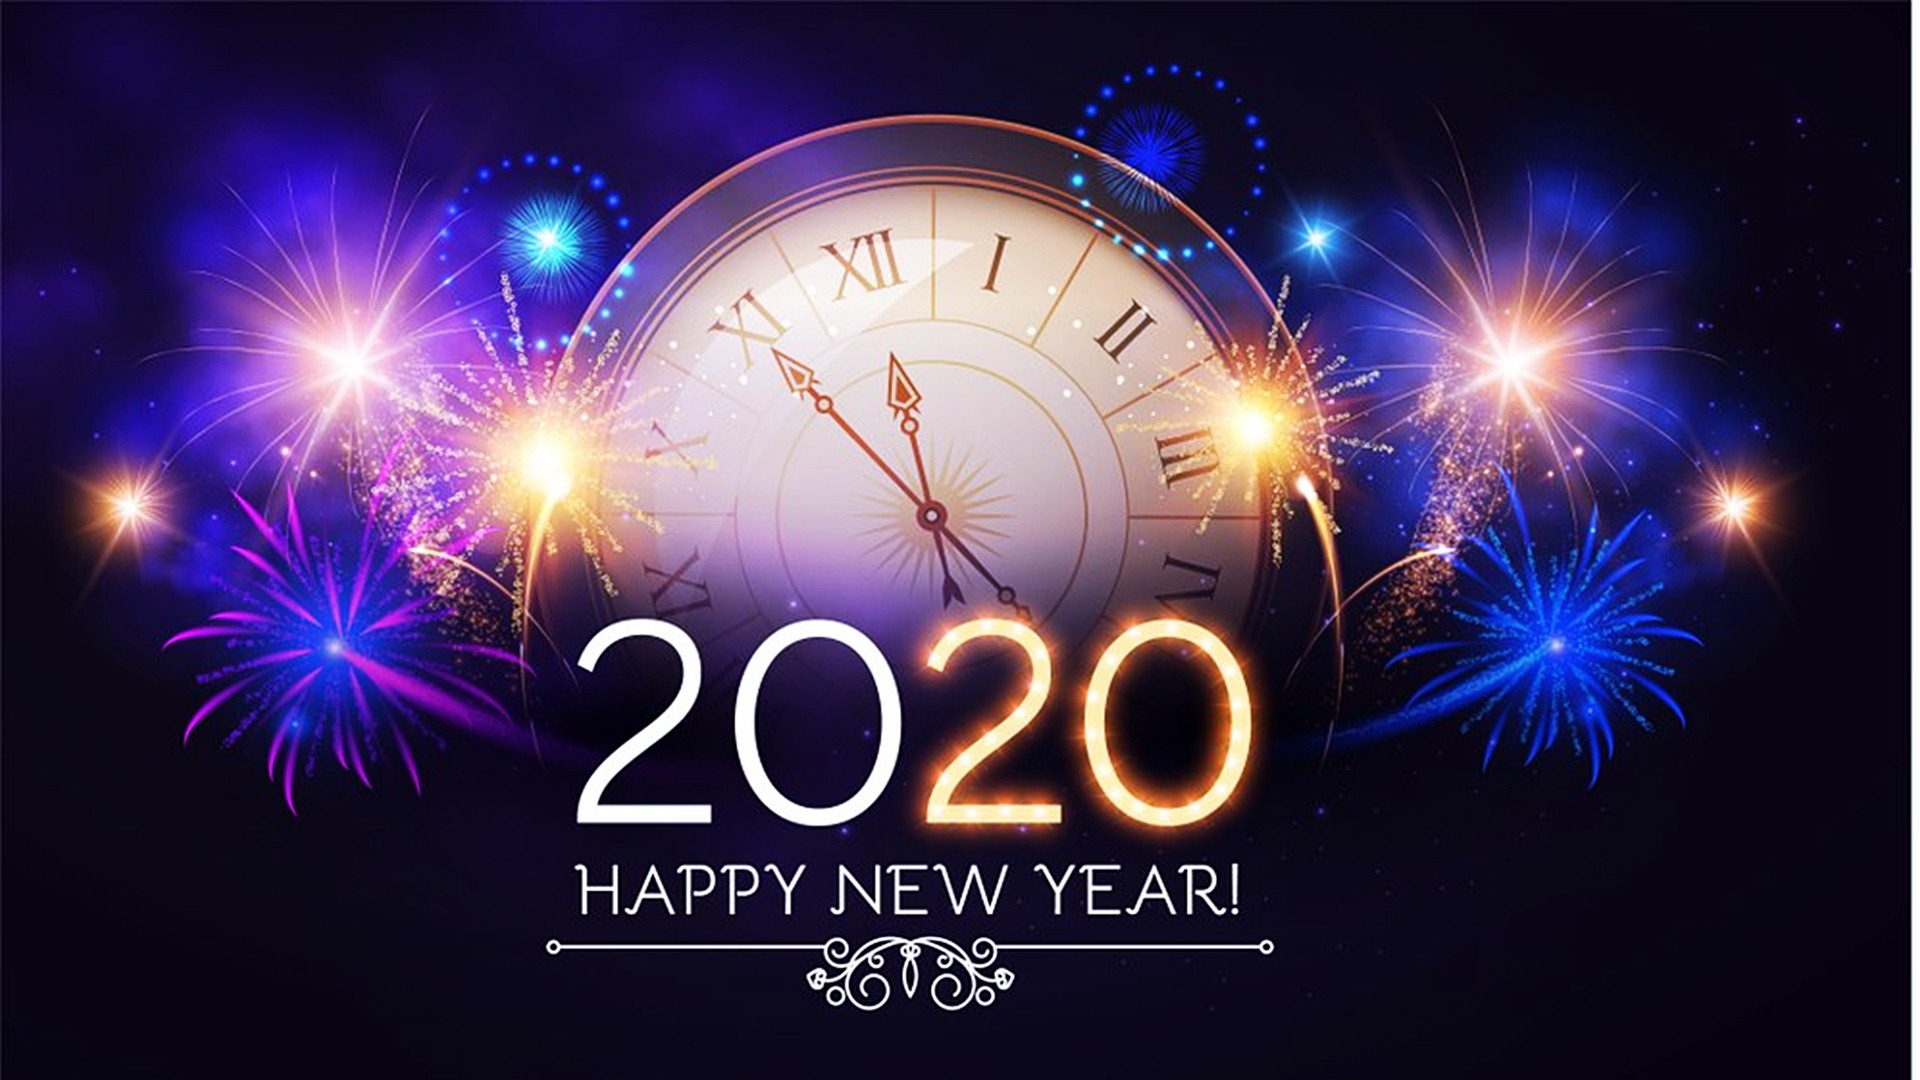 Happy New Year 2020 Anime Wallpapers ...